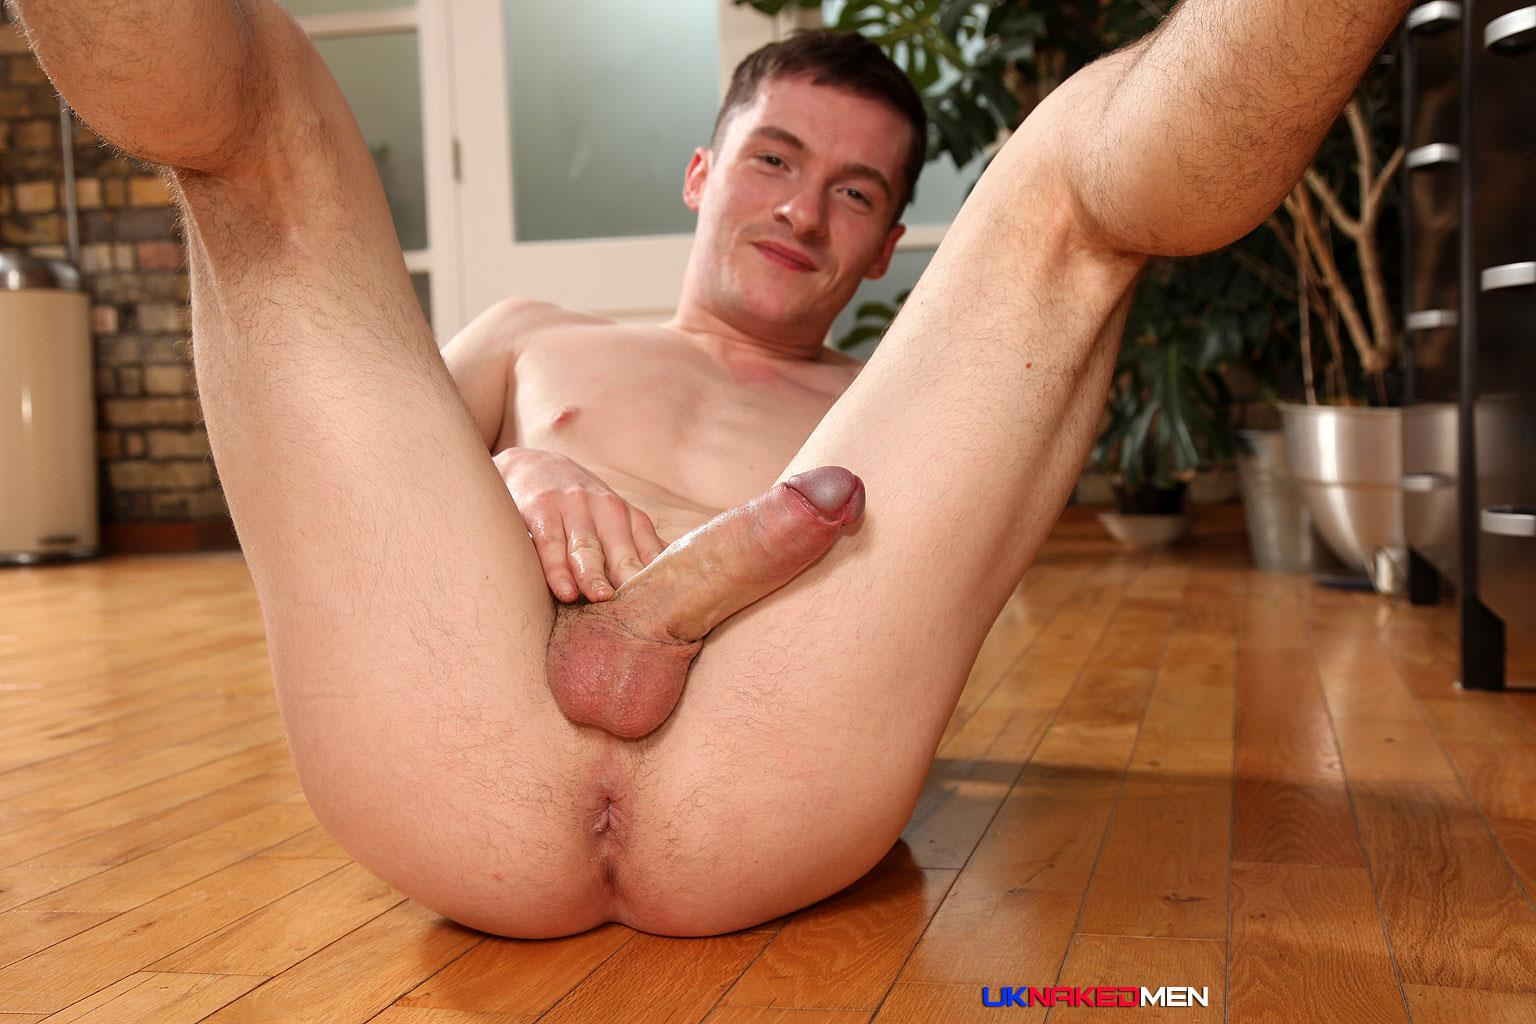 Boy men ass cum bondage movies gay he might